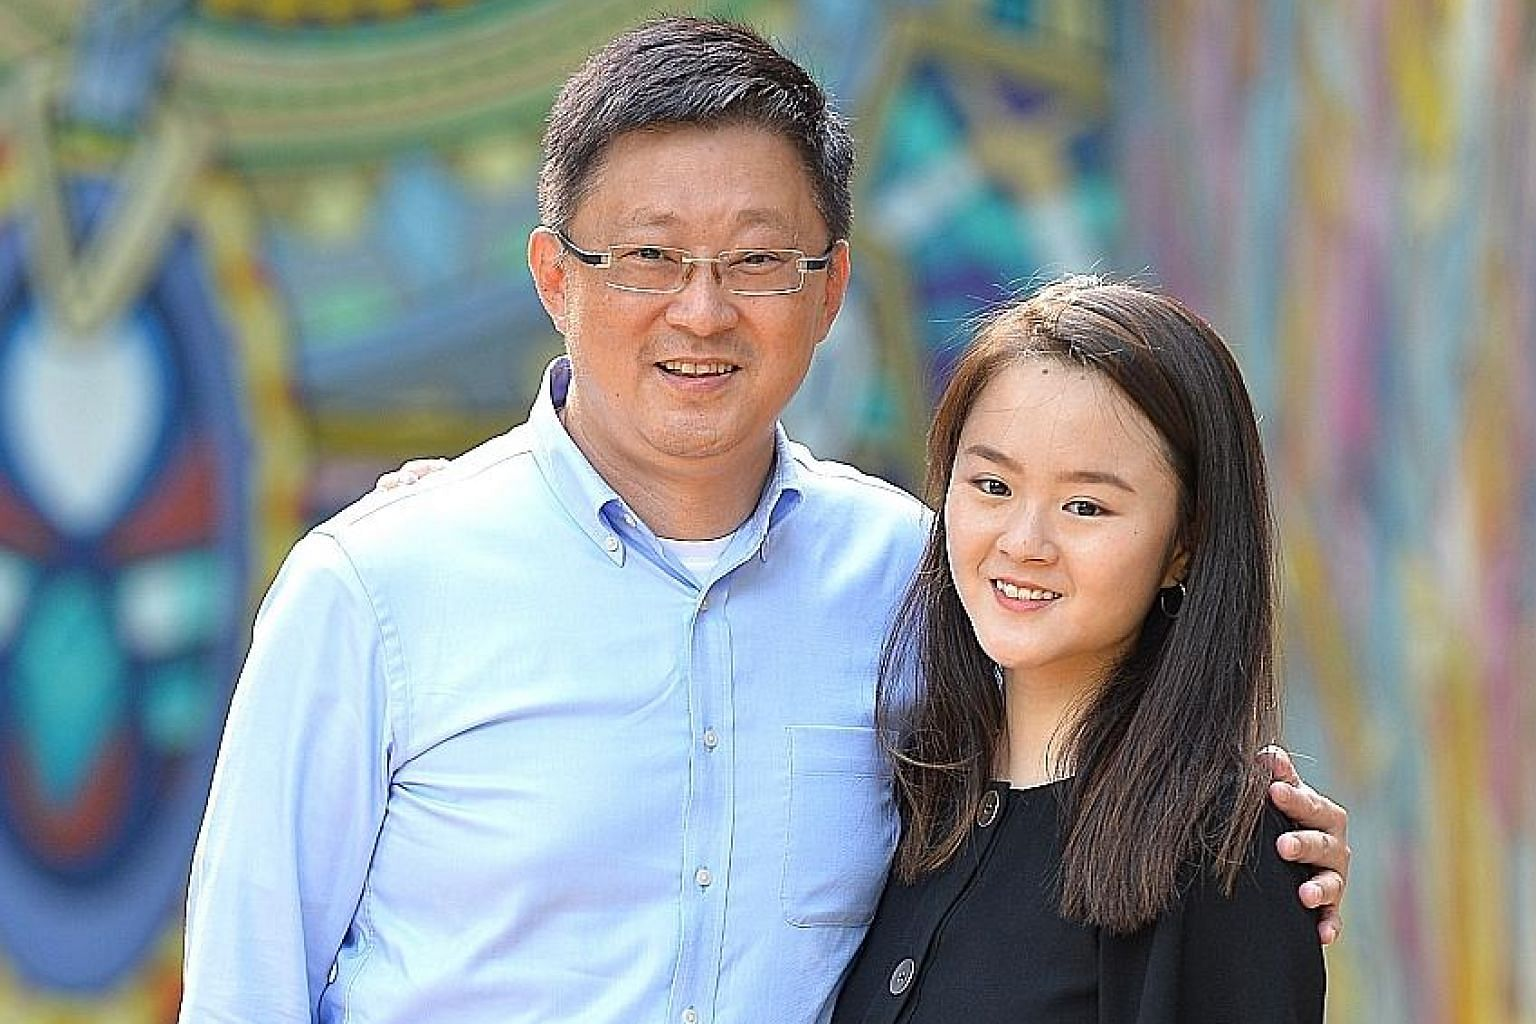 Mr Ng Kia Chiang with his daughter Kimberly, who starts work in September. Mr Ng says it is a big relief emotionally and financially that she has completed her medical degree.